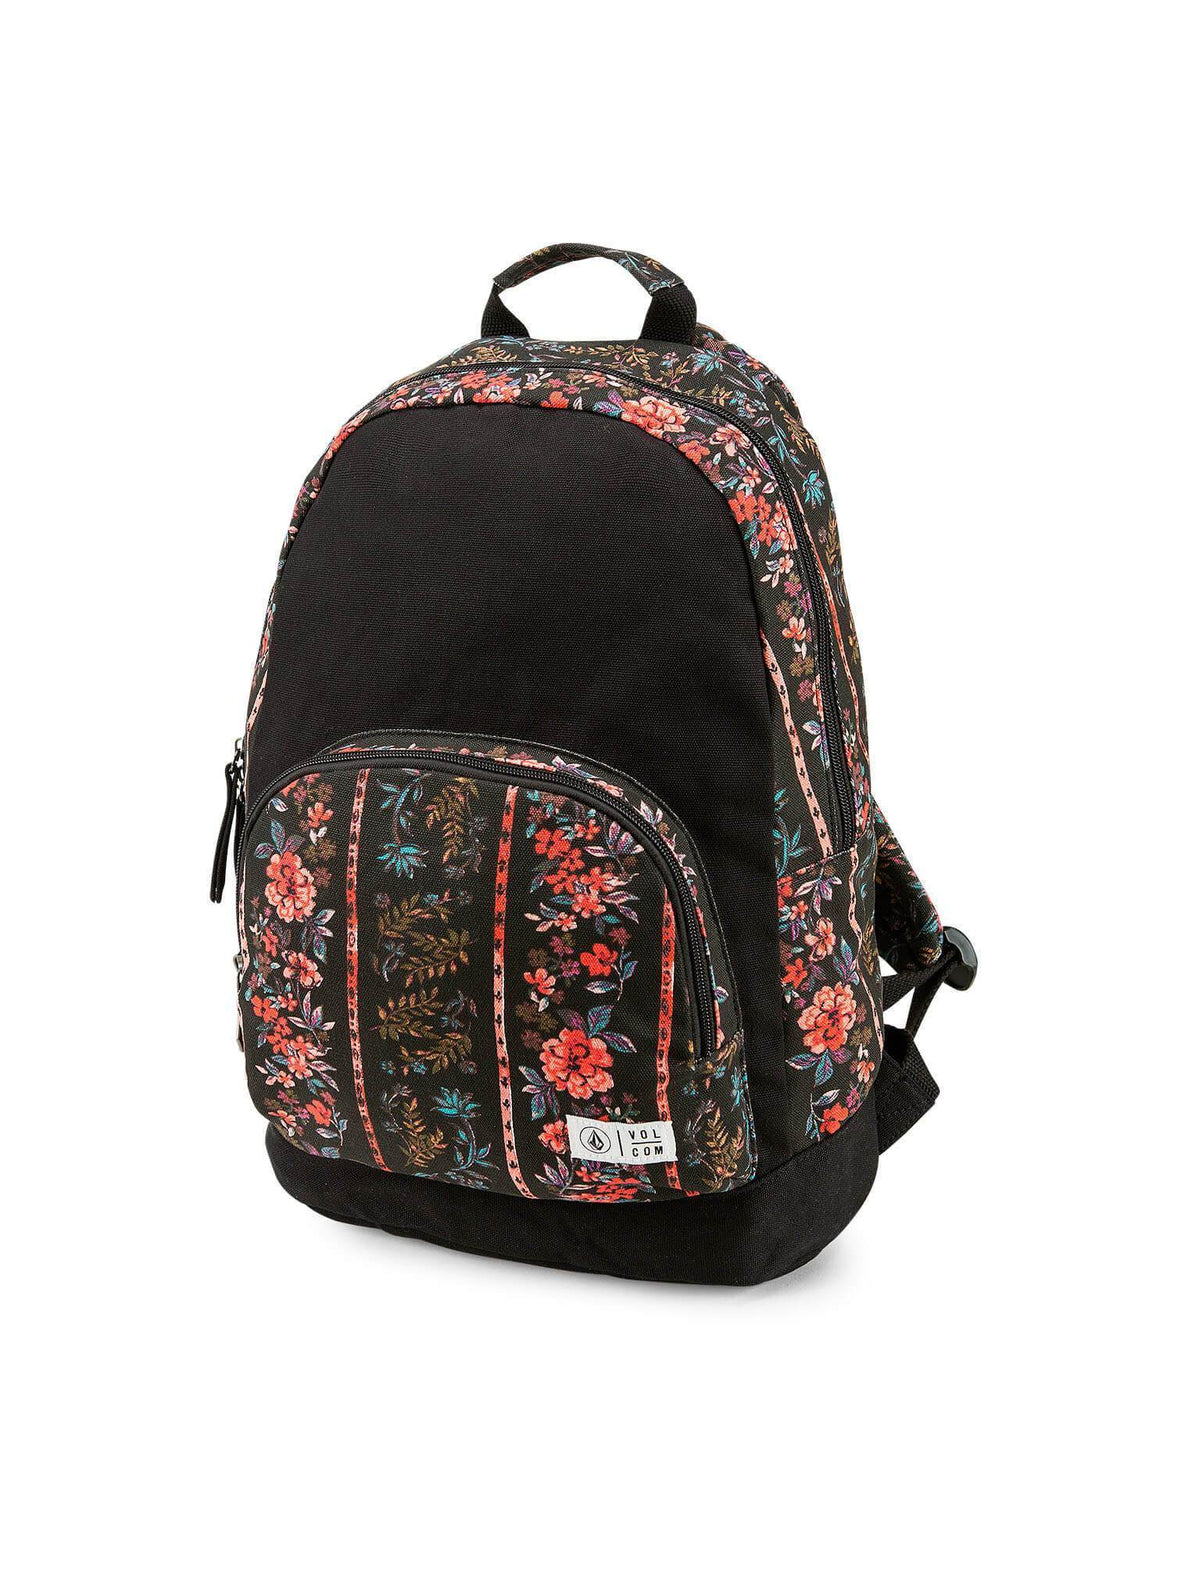 Schoolyard Canvas Backpack - Black Print